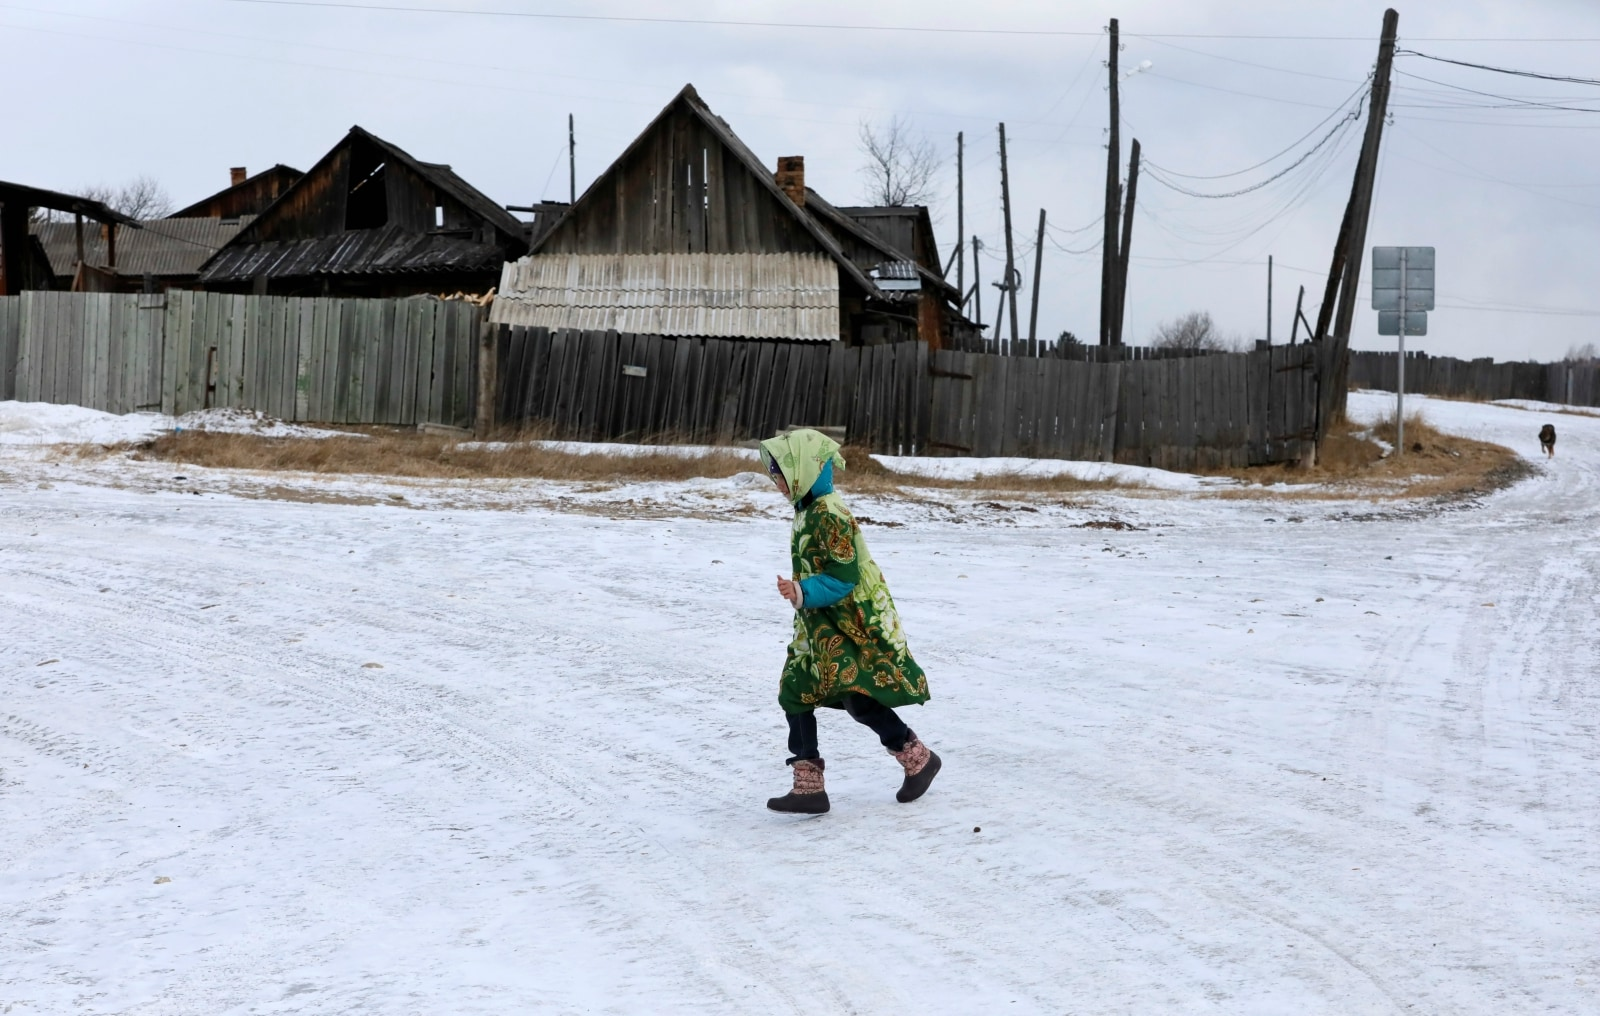 A girl runs before the beginning of a performance on the occasion of Maslenitsa, also known as Pancake Week, which is a pagan holiday marking the end of winter, in a street of a Siberian settlement founded as a logging camp and part of the Soviet Union's Gulag prison labour system, Tugach, southeast of Krasnoyarsk, March 10, 2019. REUTERS/Ilya Naymushin